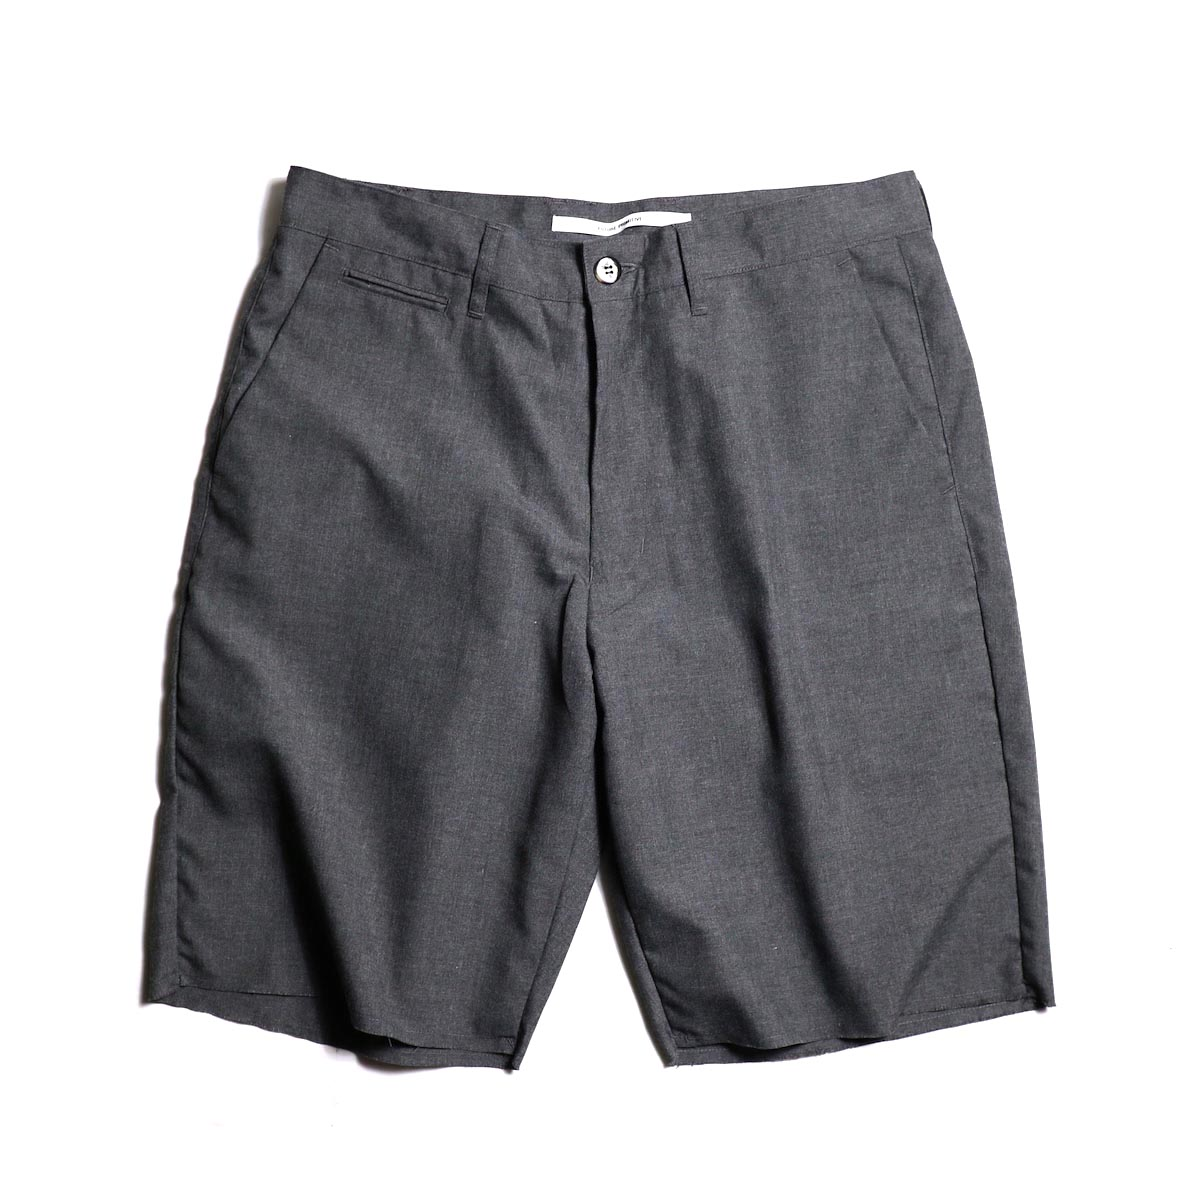 FUTURE PRIMITIVE / FP CHINO SHORTS -GRAY